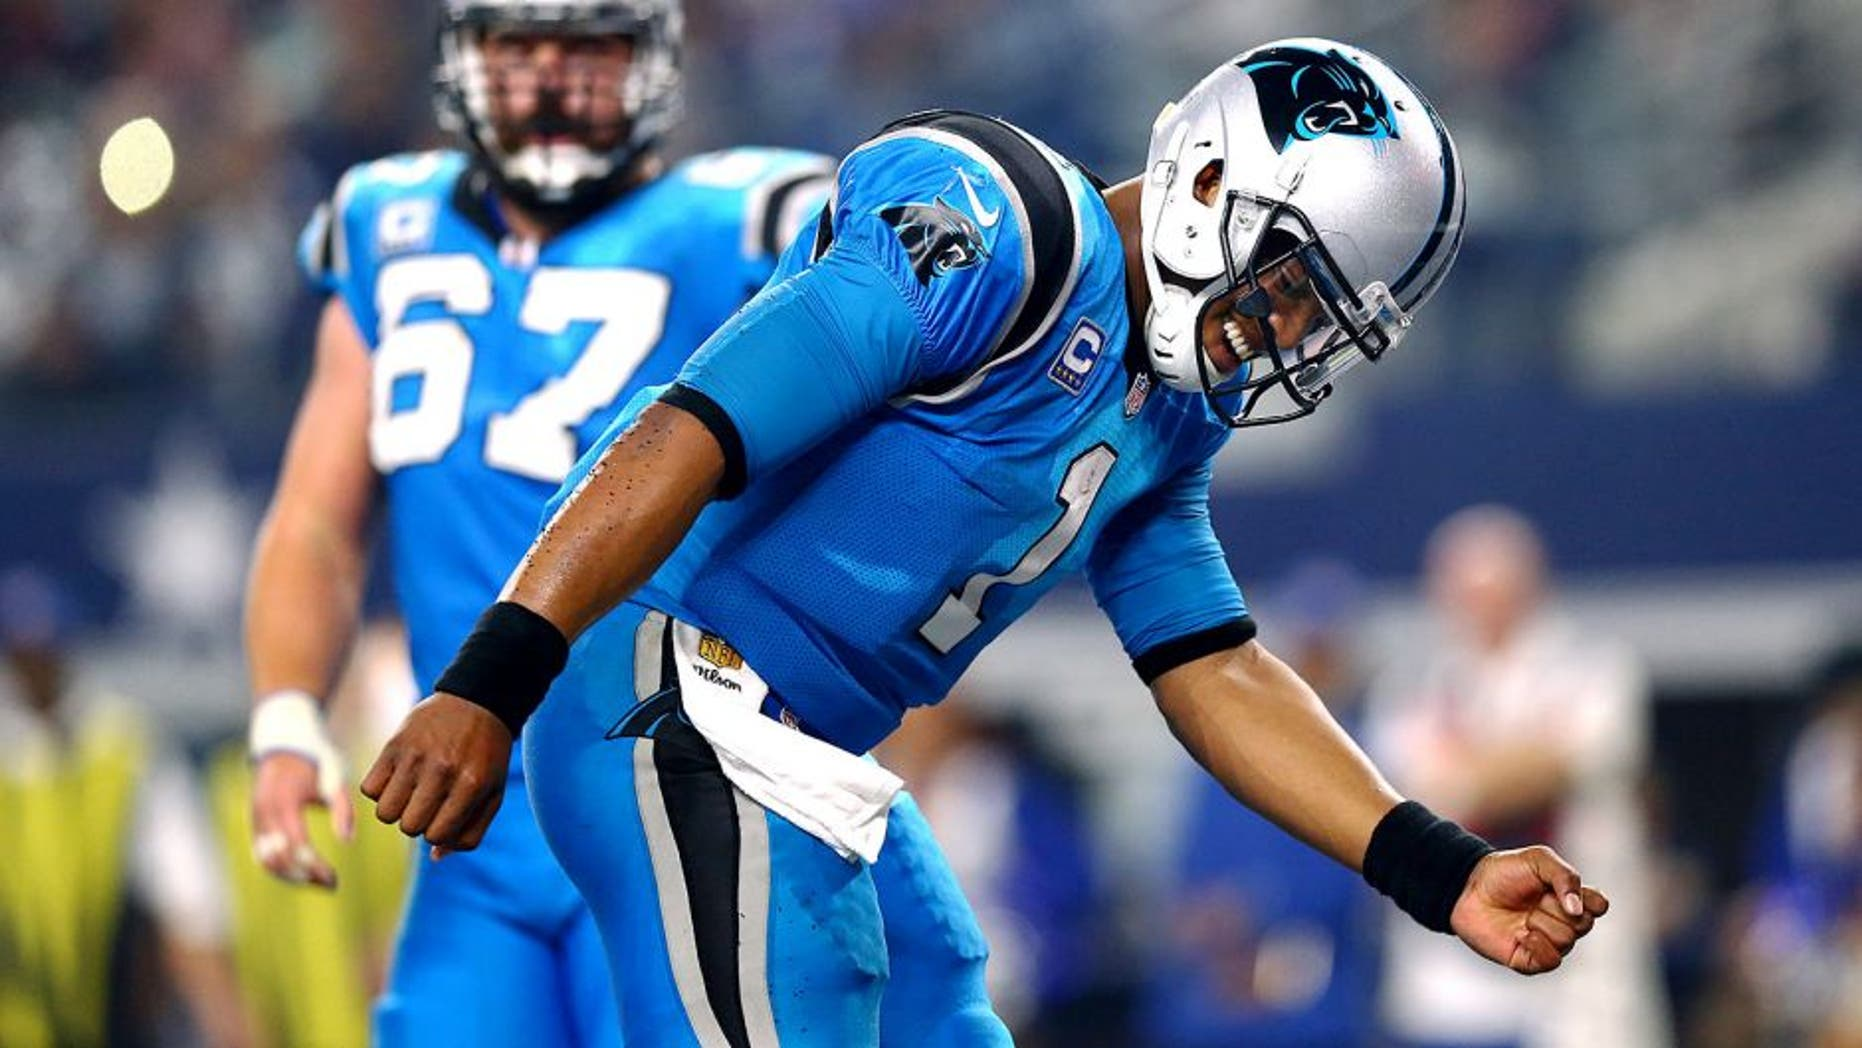 ARLINGTON, TX - NOVEMBER 26: Cam Newton #1 of the Carolina Panthers celebrates after scoring a touchdown against the Dallas Cowboys as teammate Ryan Kalil #67 looks on in the second half at AT&T Stadium on November 26, 2015 in Arlington, Texas. (Photo by Ronald Martinez/Getty Images)